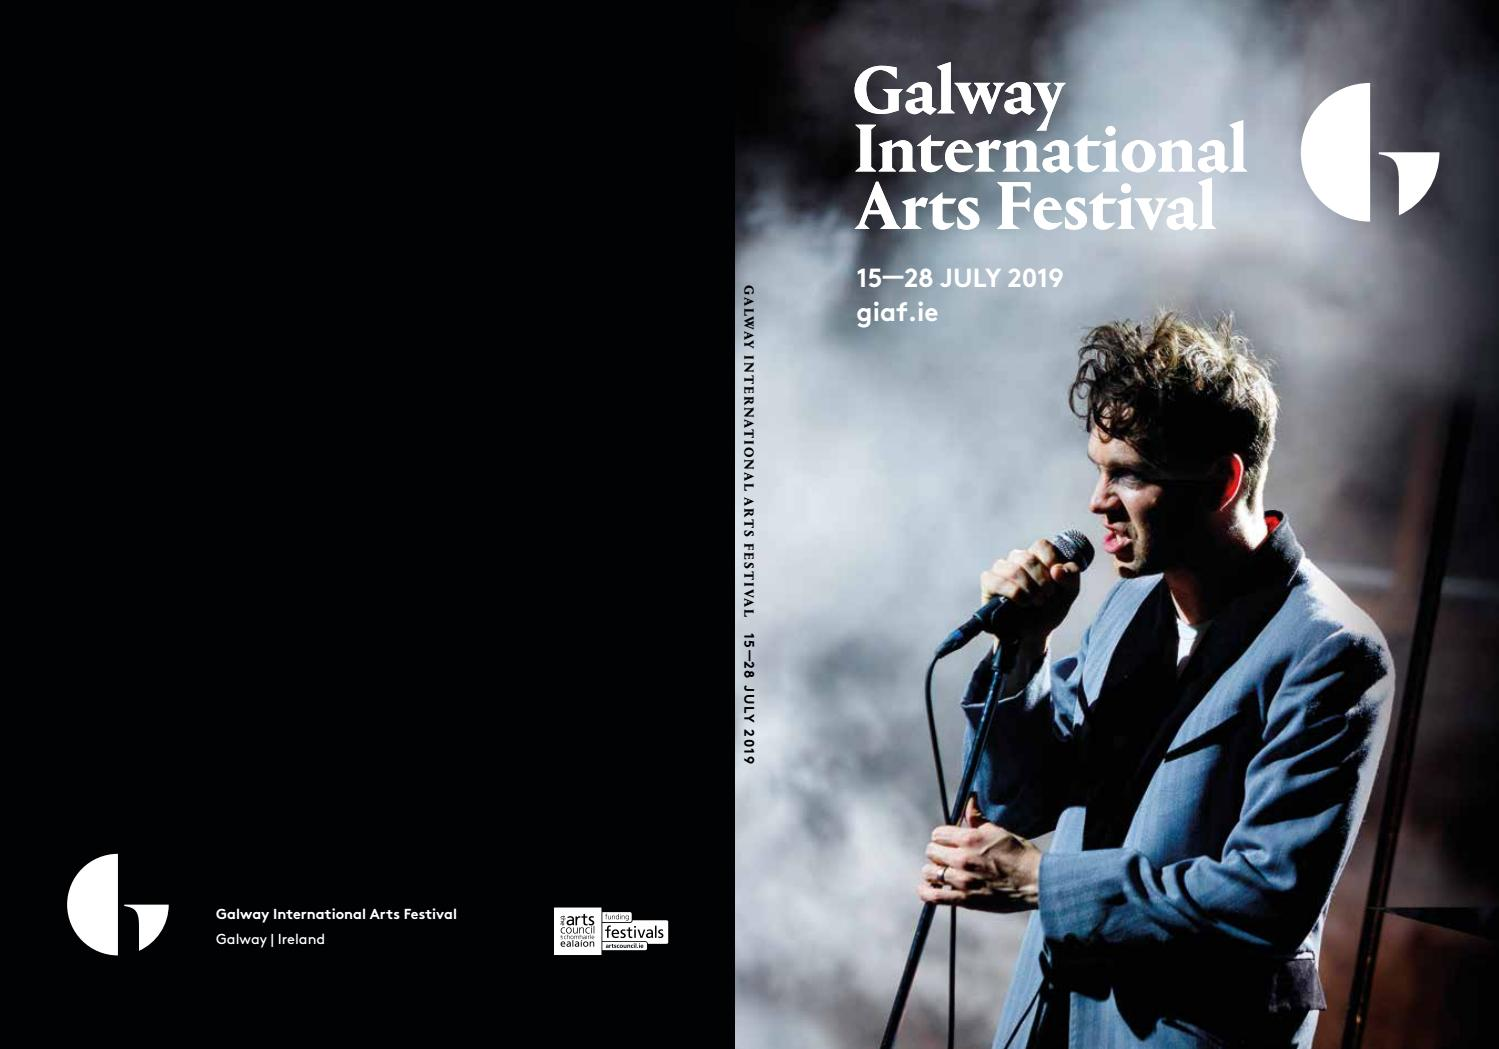 Galway International Arts Festival Programme 2019 by Galway